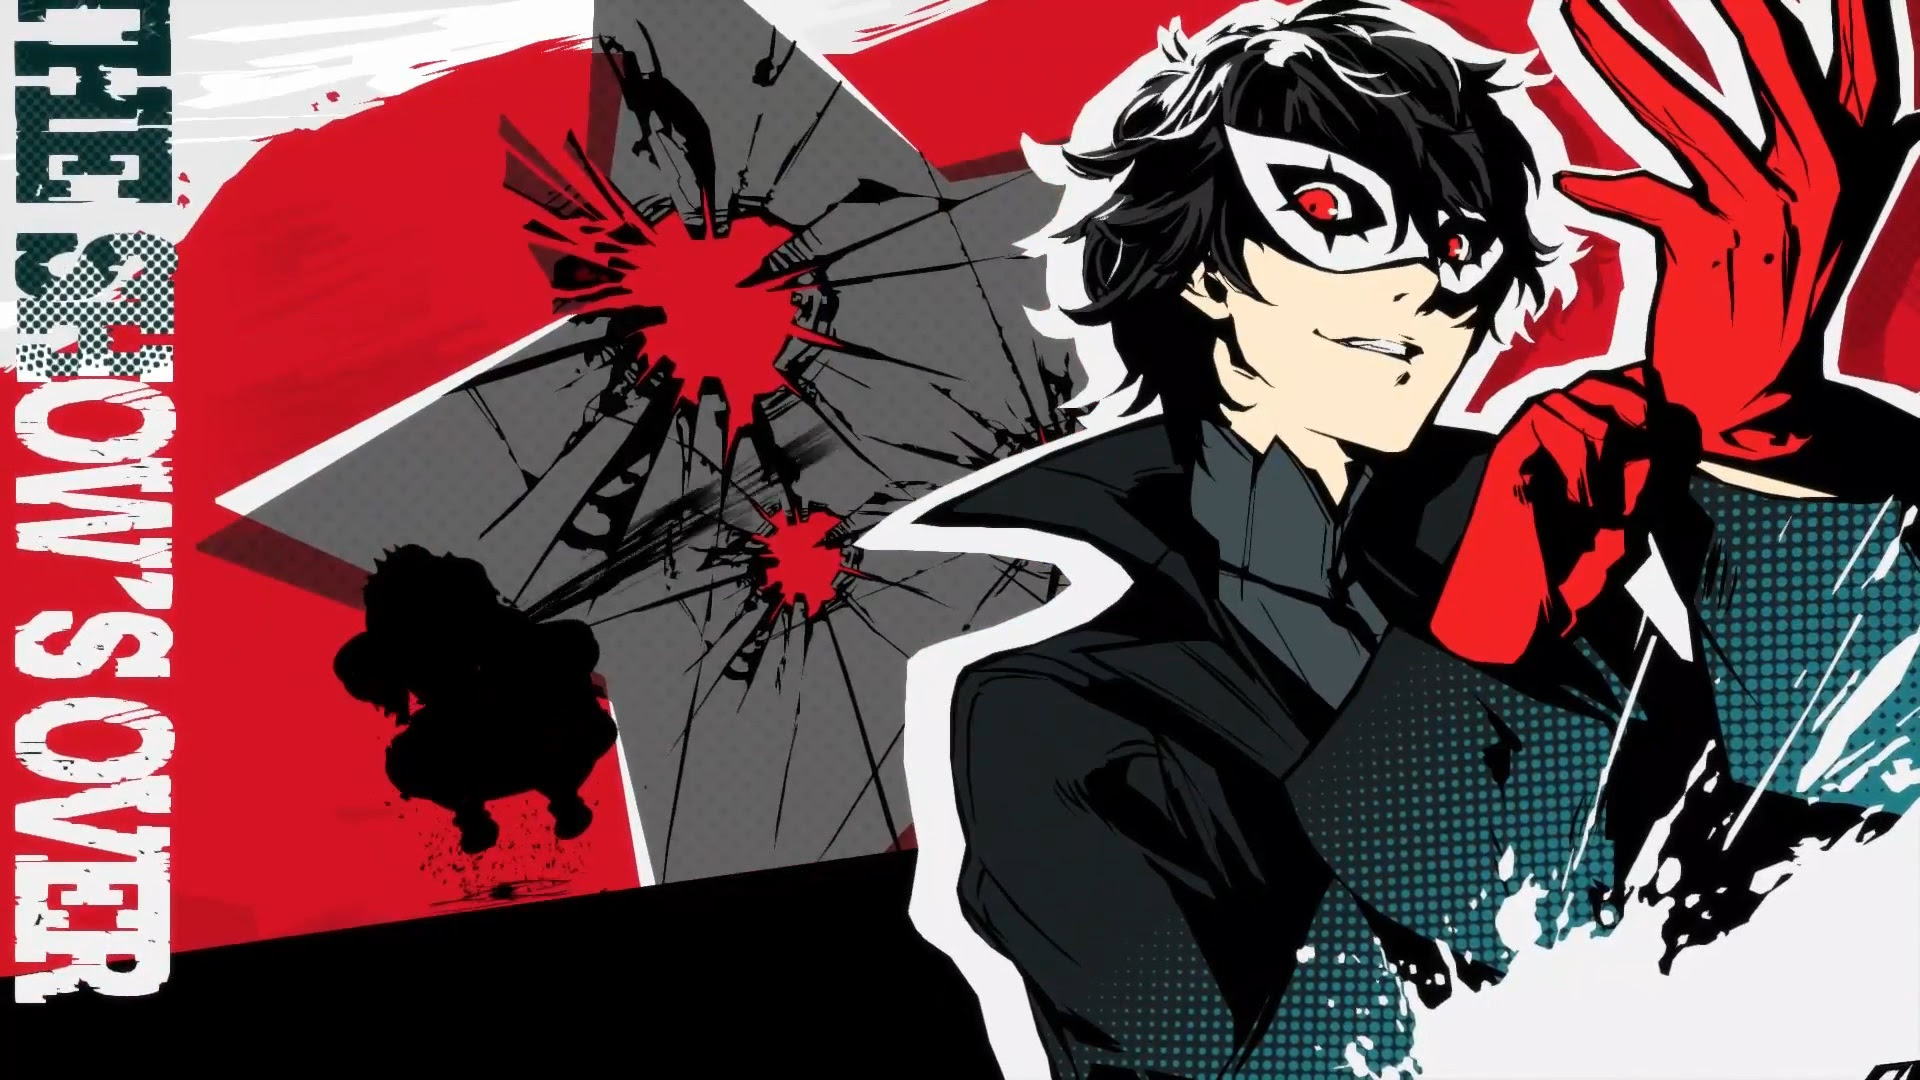 Joker from Persona 5 arrives in figma form to steal your heart screenshot